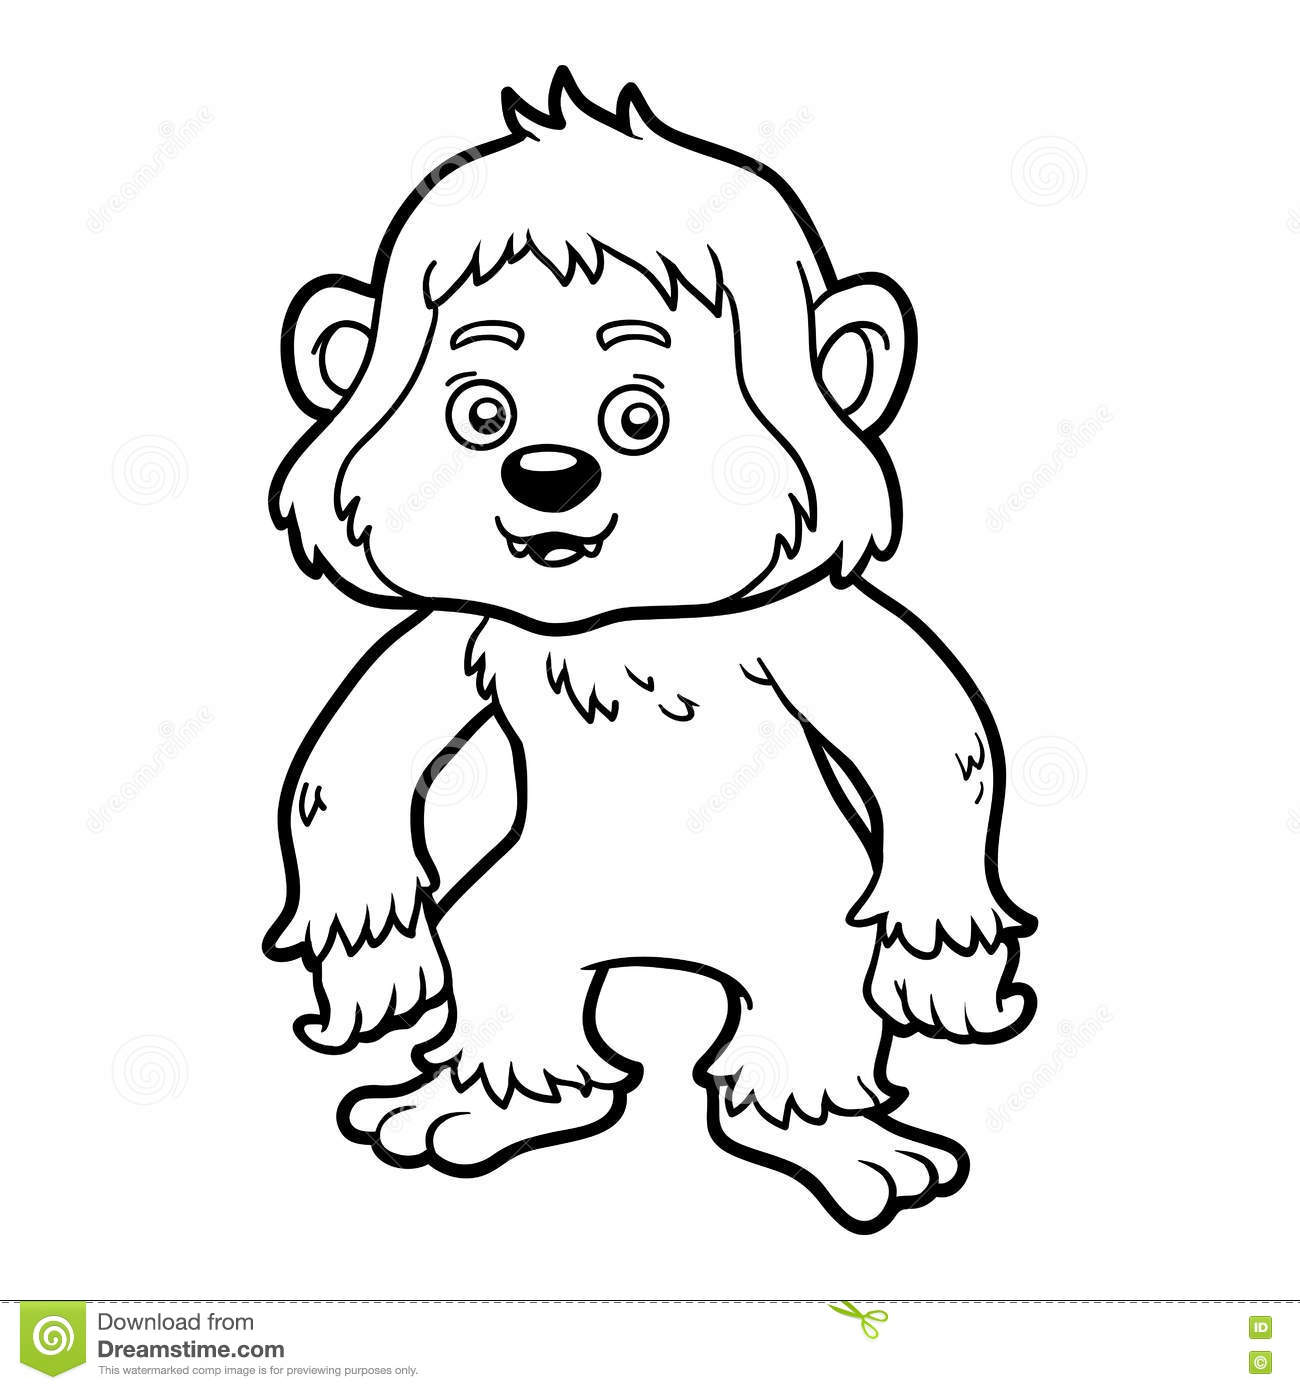 Royalty Free Vector Download Coloring Book Yeti